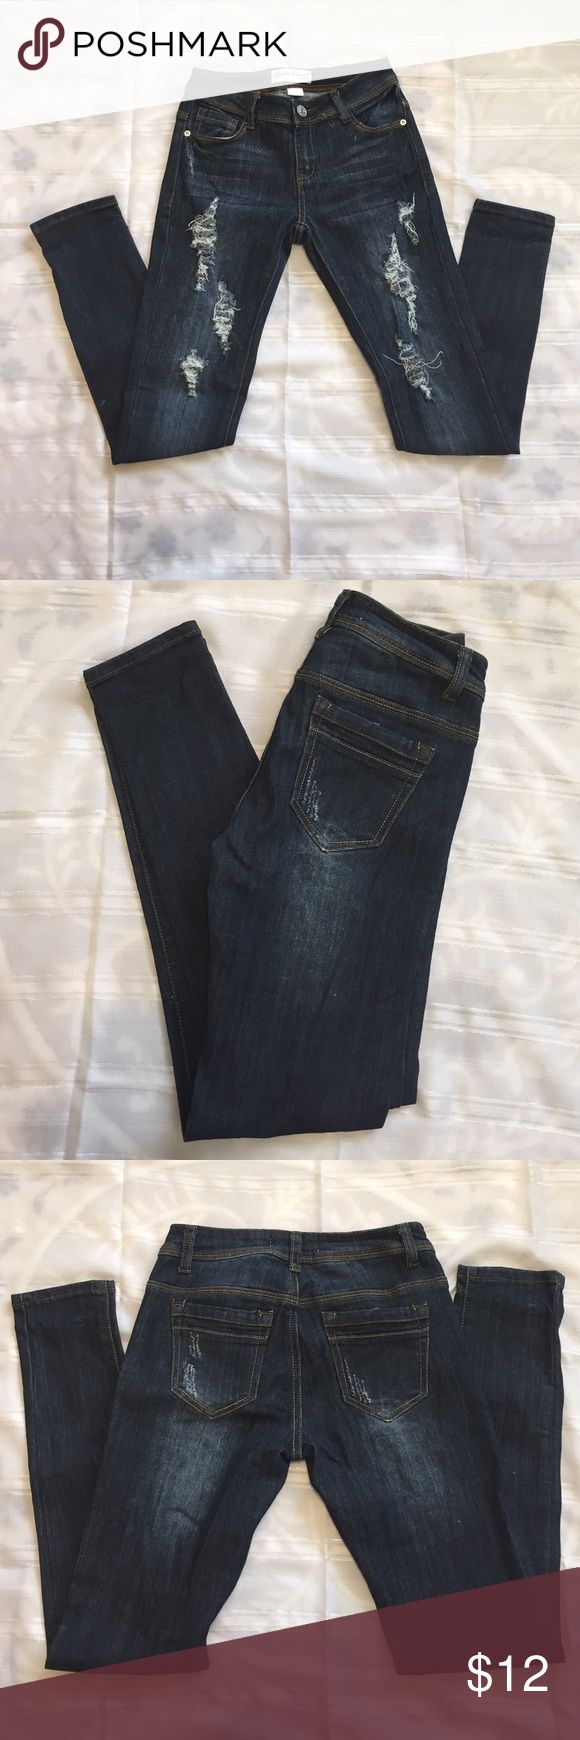 Girls ripped jeans ❤️💄❤️ Girls ripped jeans in excellent condition approximately 37 1/2 inch long. Bottoms Jeans